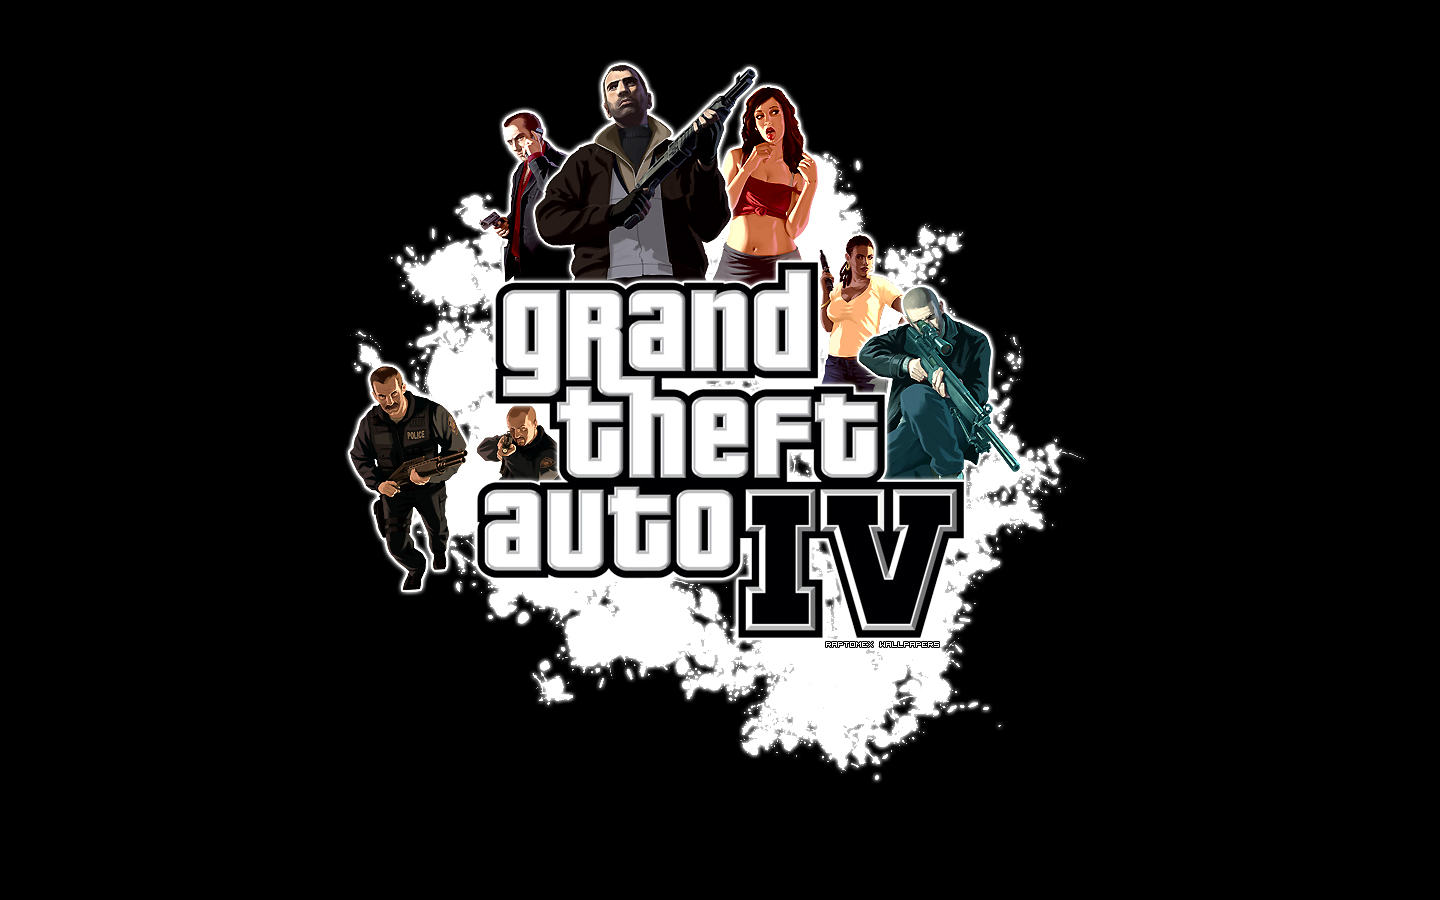 Grand Theft Auto IV Wallpaper by Raptomex 1440x900